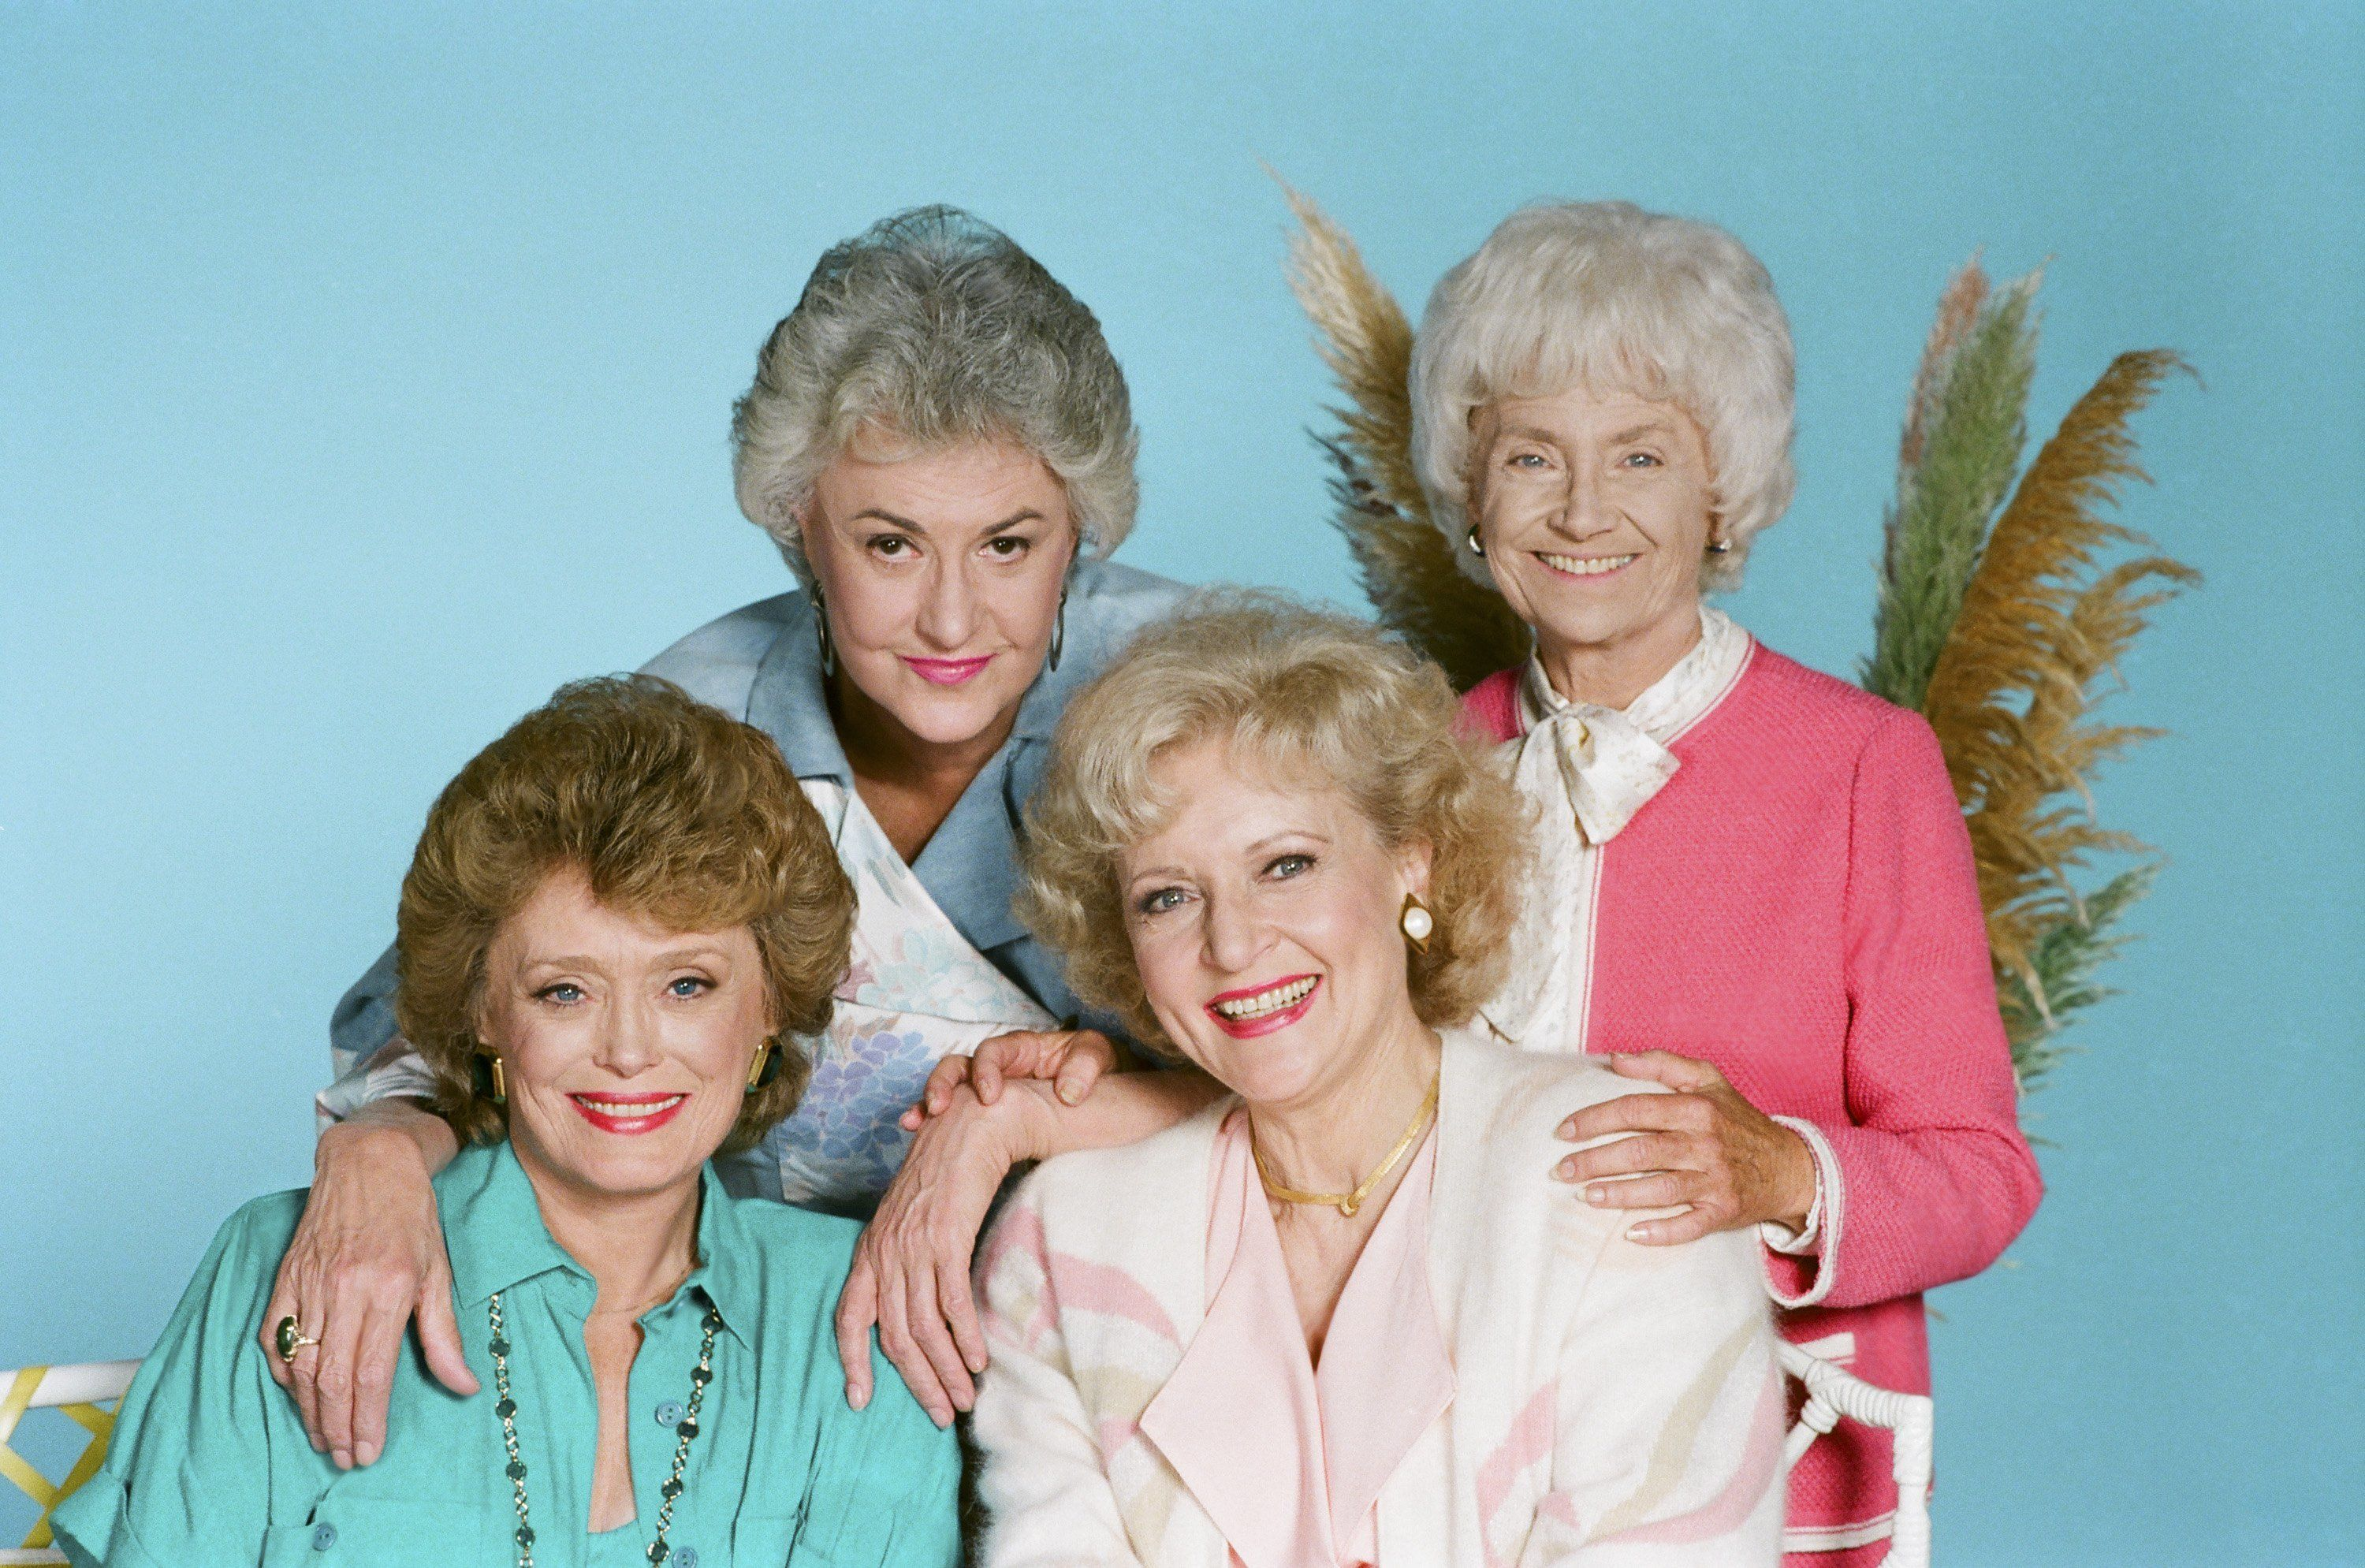 Rue McClanahan as Blanche Devereaux, Bea Arthur as Dorothy Petrillo Zbornak, Betty White as Rose Nylund and Estelle Getty as